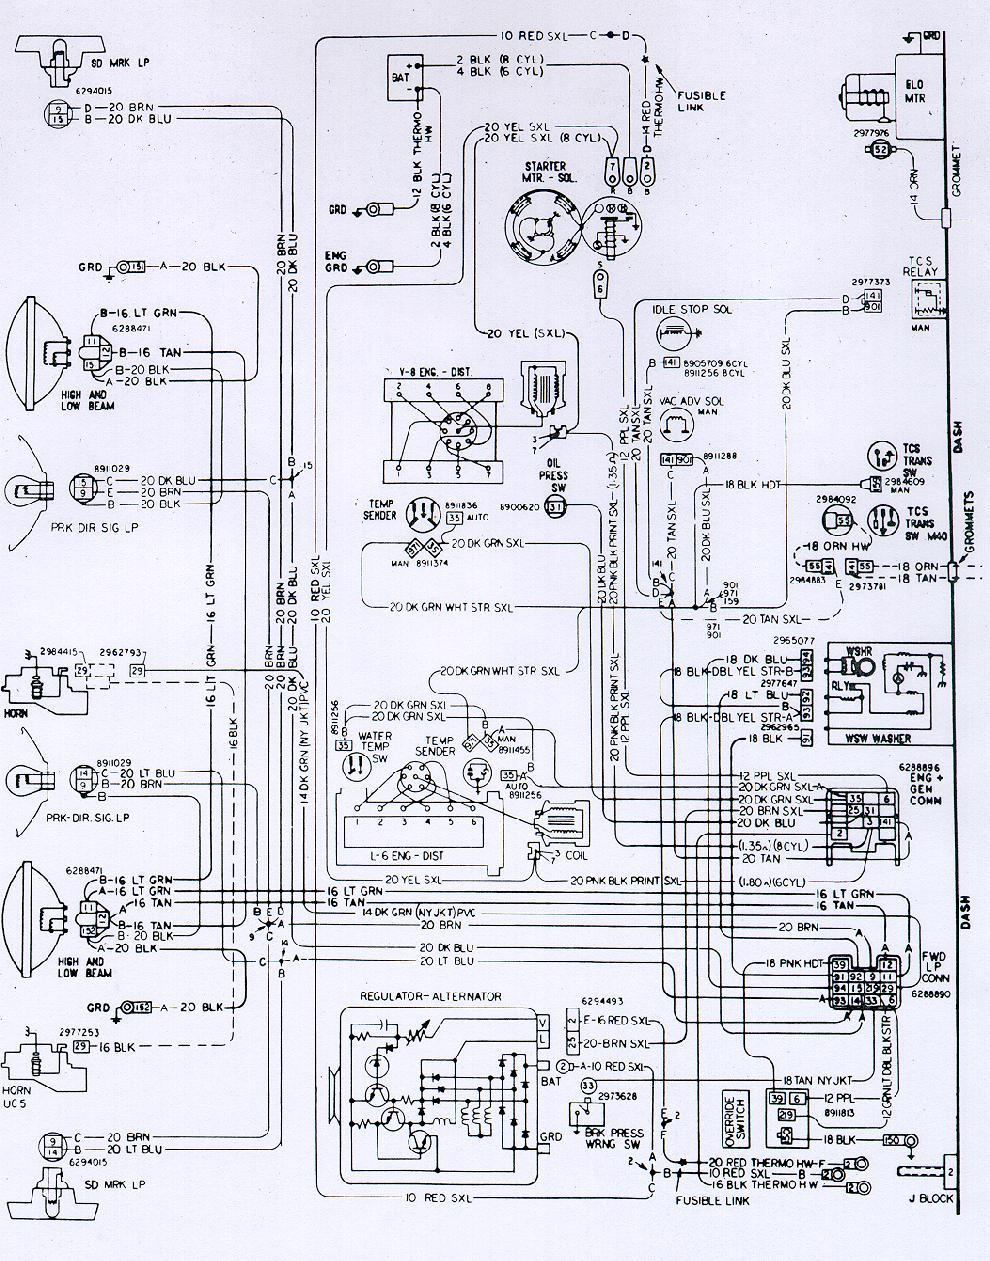 hight resolution of wiring diagram of a 1991 chevy camaro wiring diagram expert 1991 chevy camaro wiring